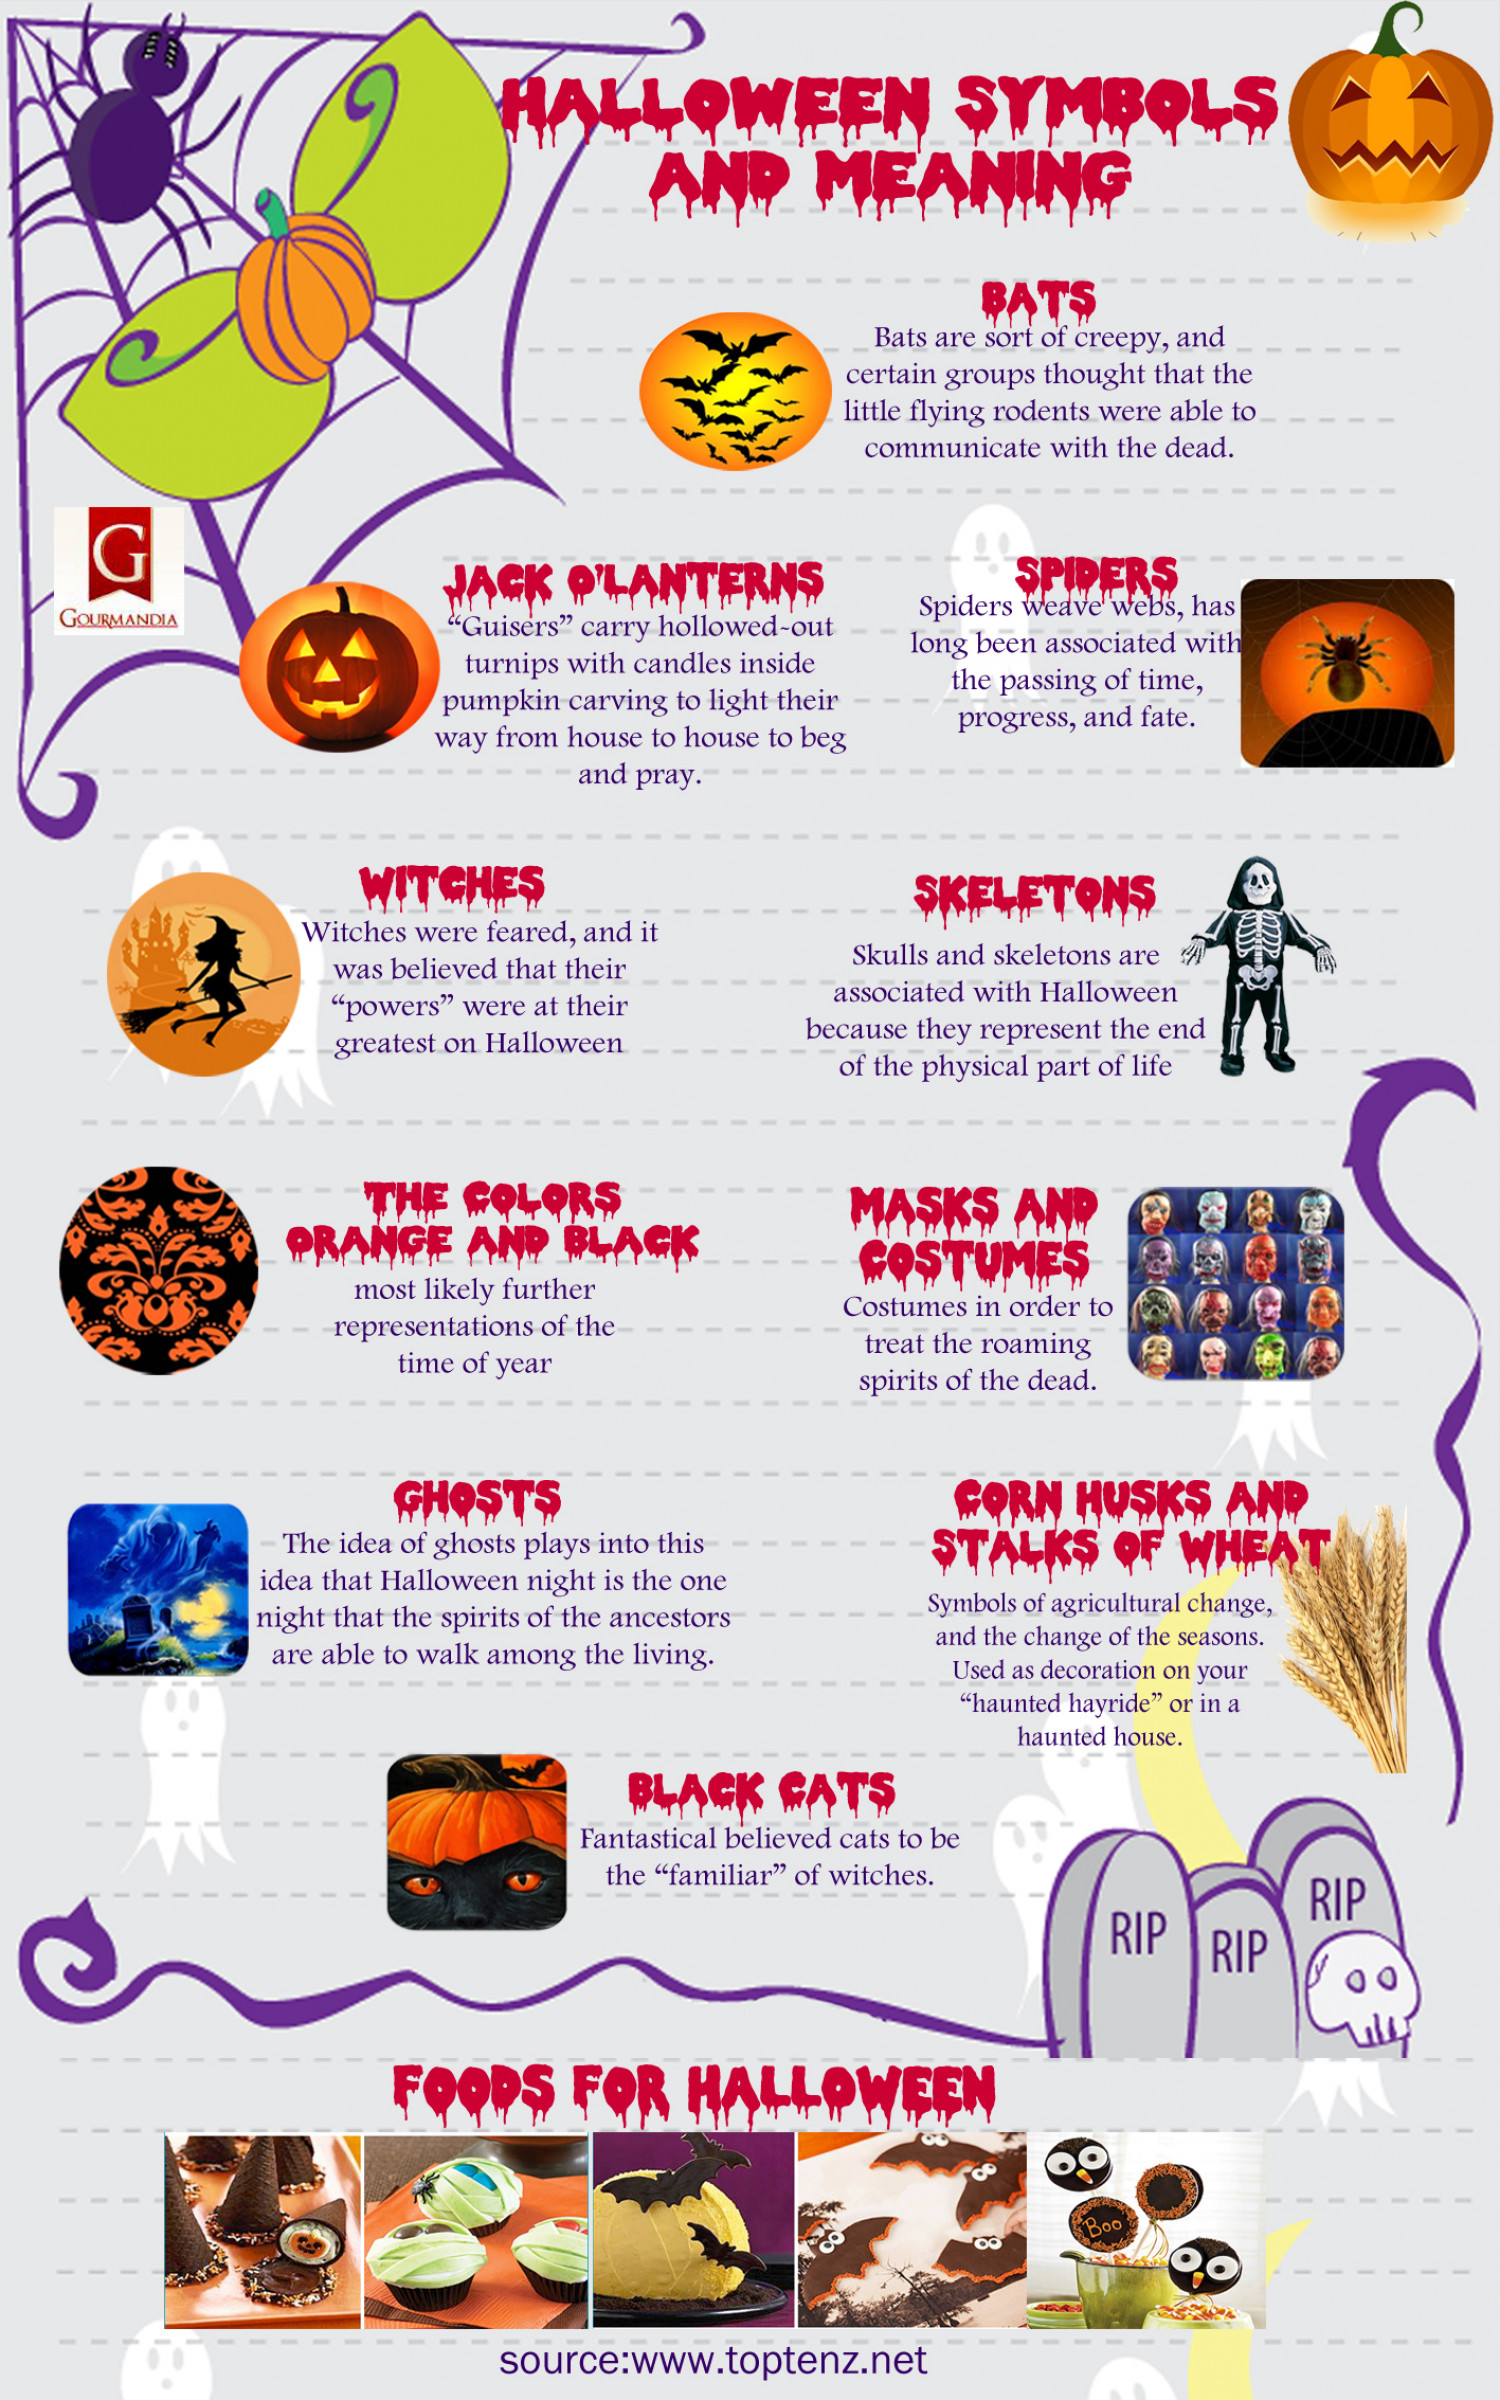 Halloween Symbols and Meaning Infographic